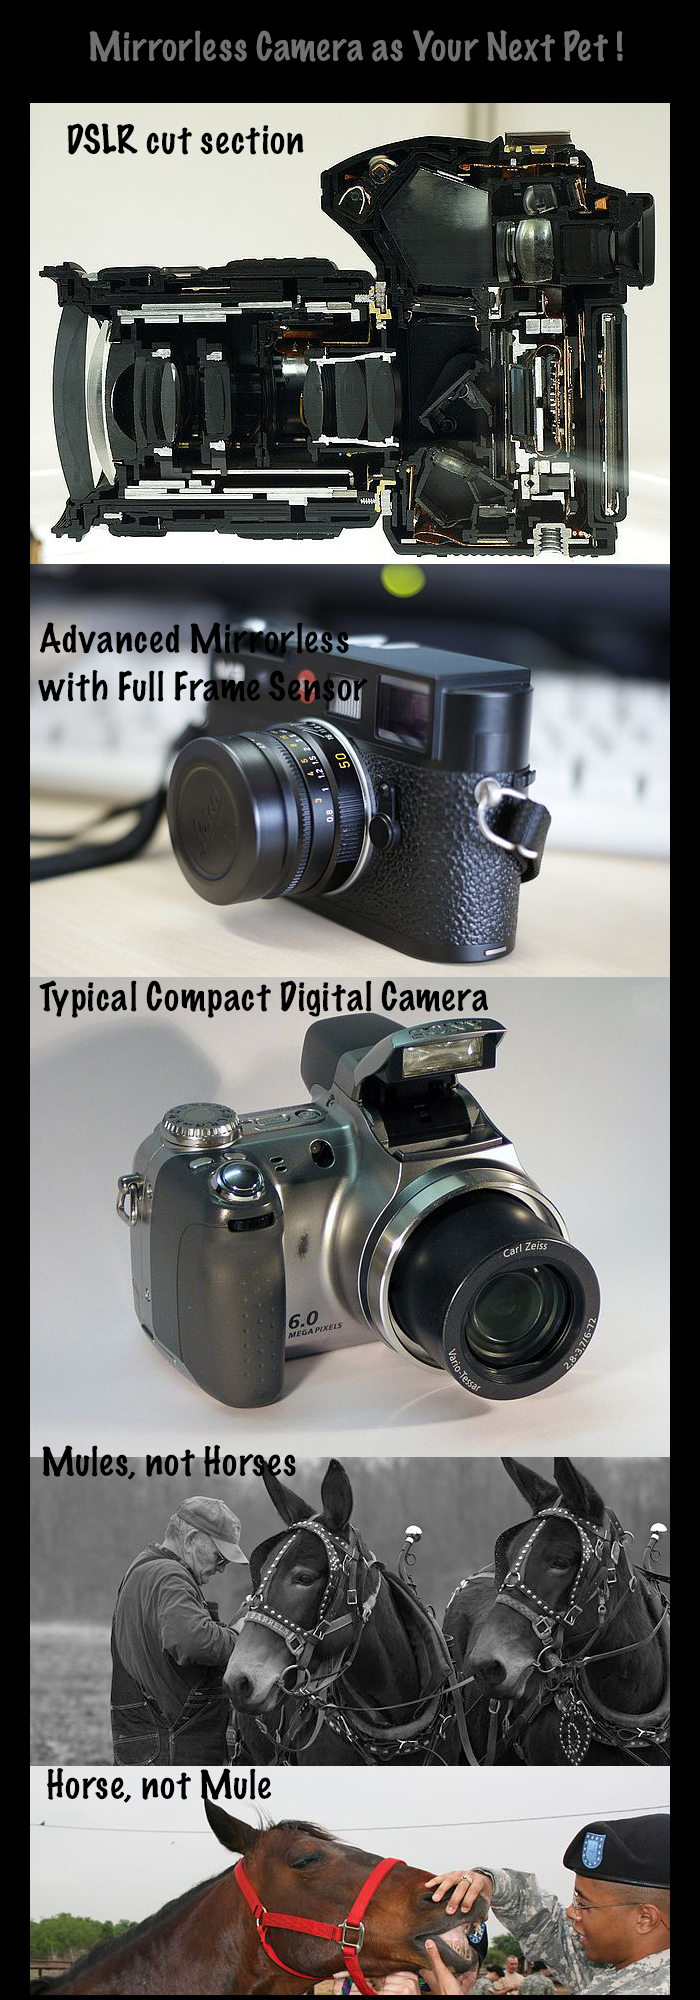 Mirrorless-camera-versus-DSLR